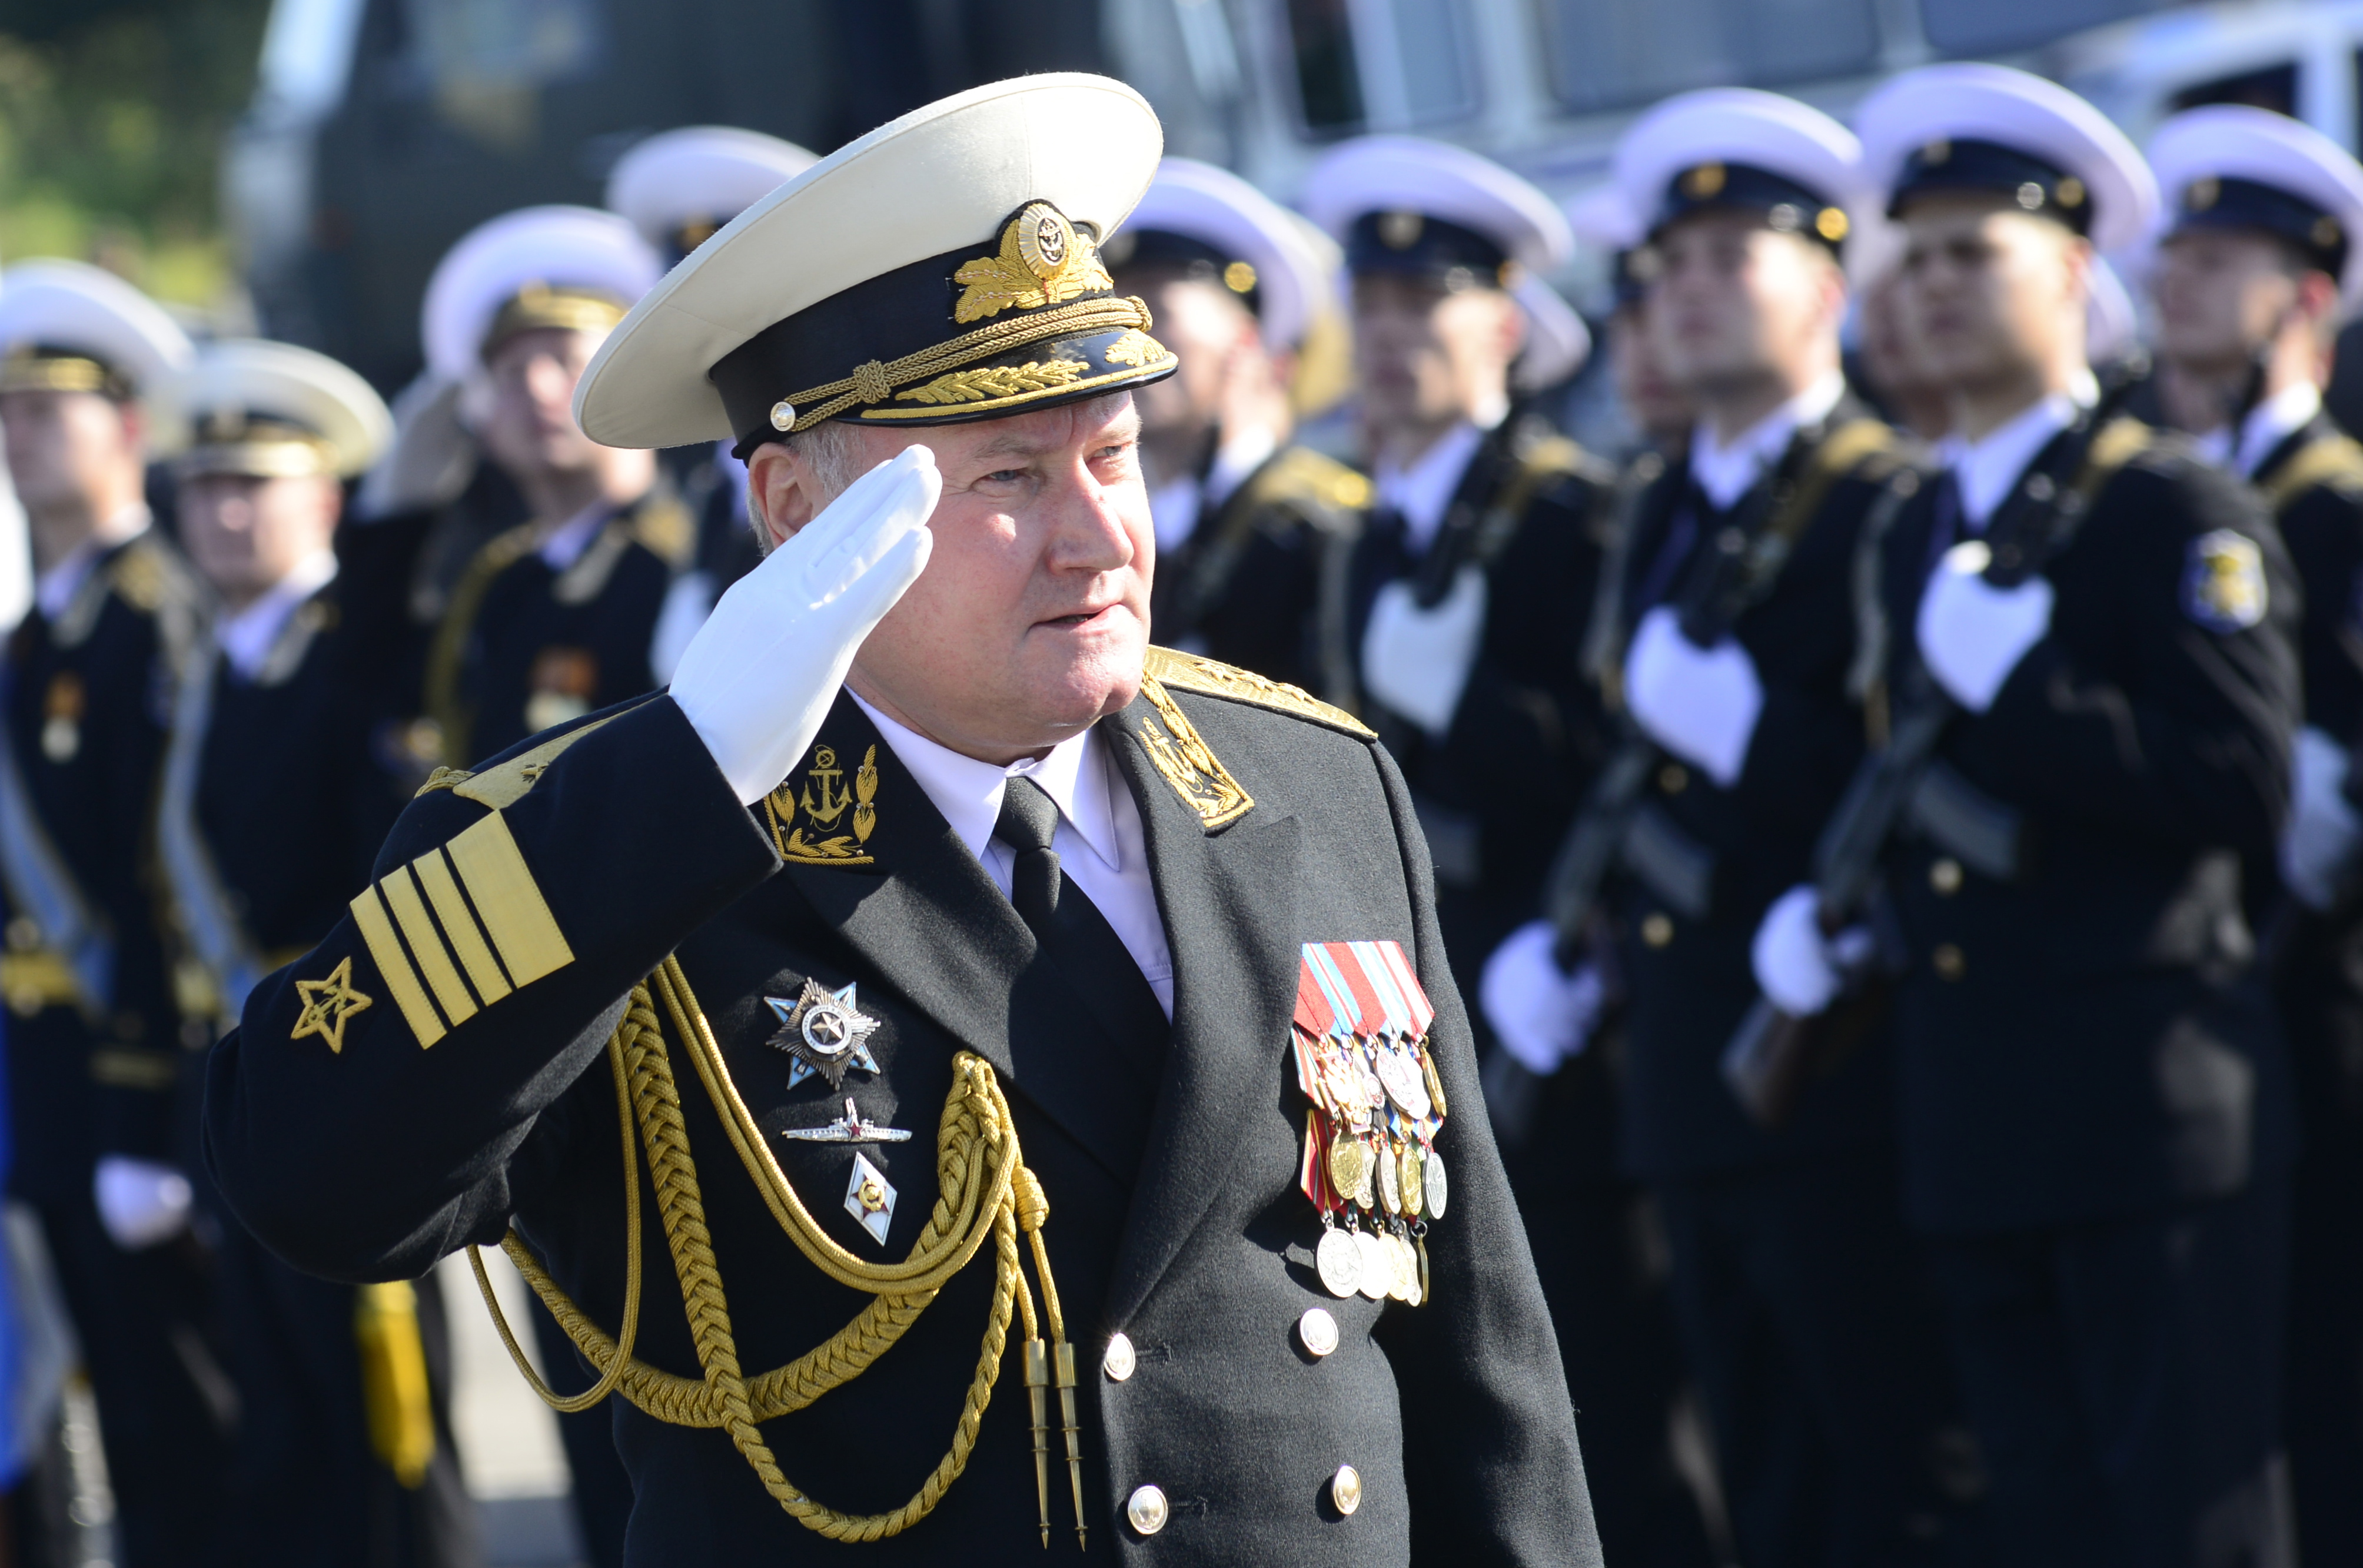 Admiral Vladimir Korolev, Commander-in-Chief of the Russian Navy. Source: Lev Fedoseev/TASS